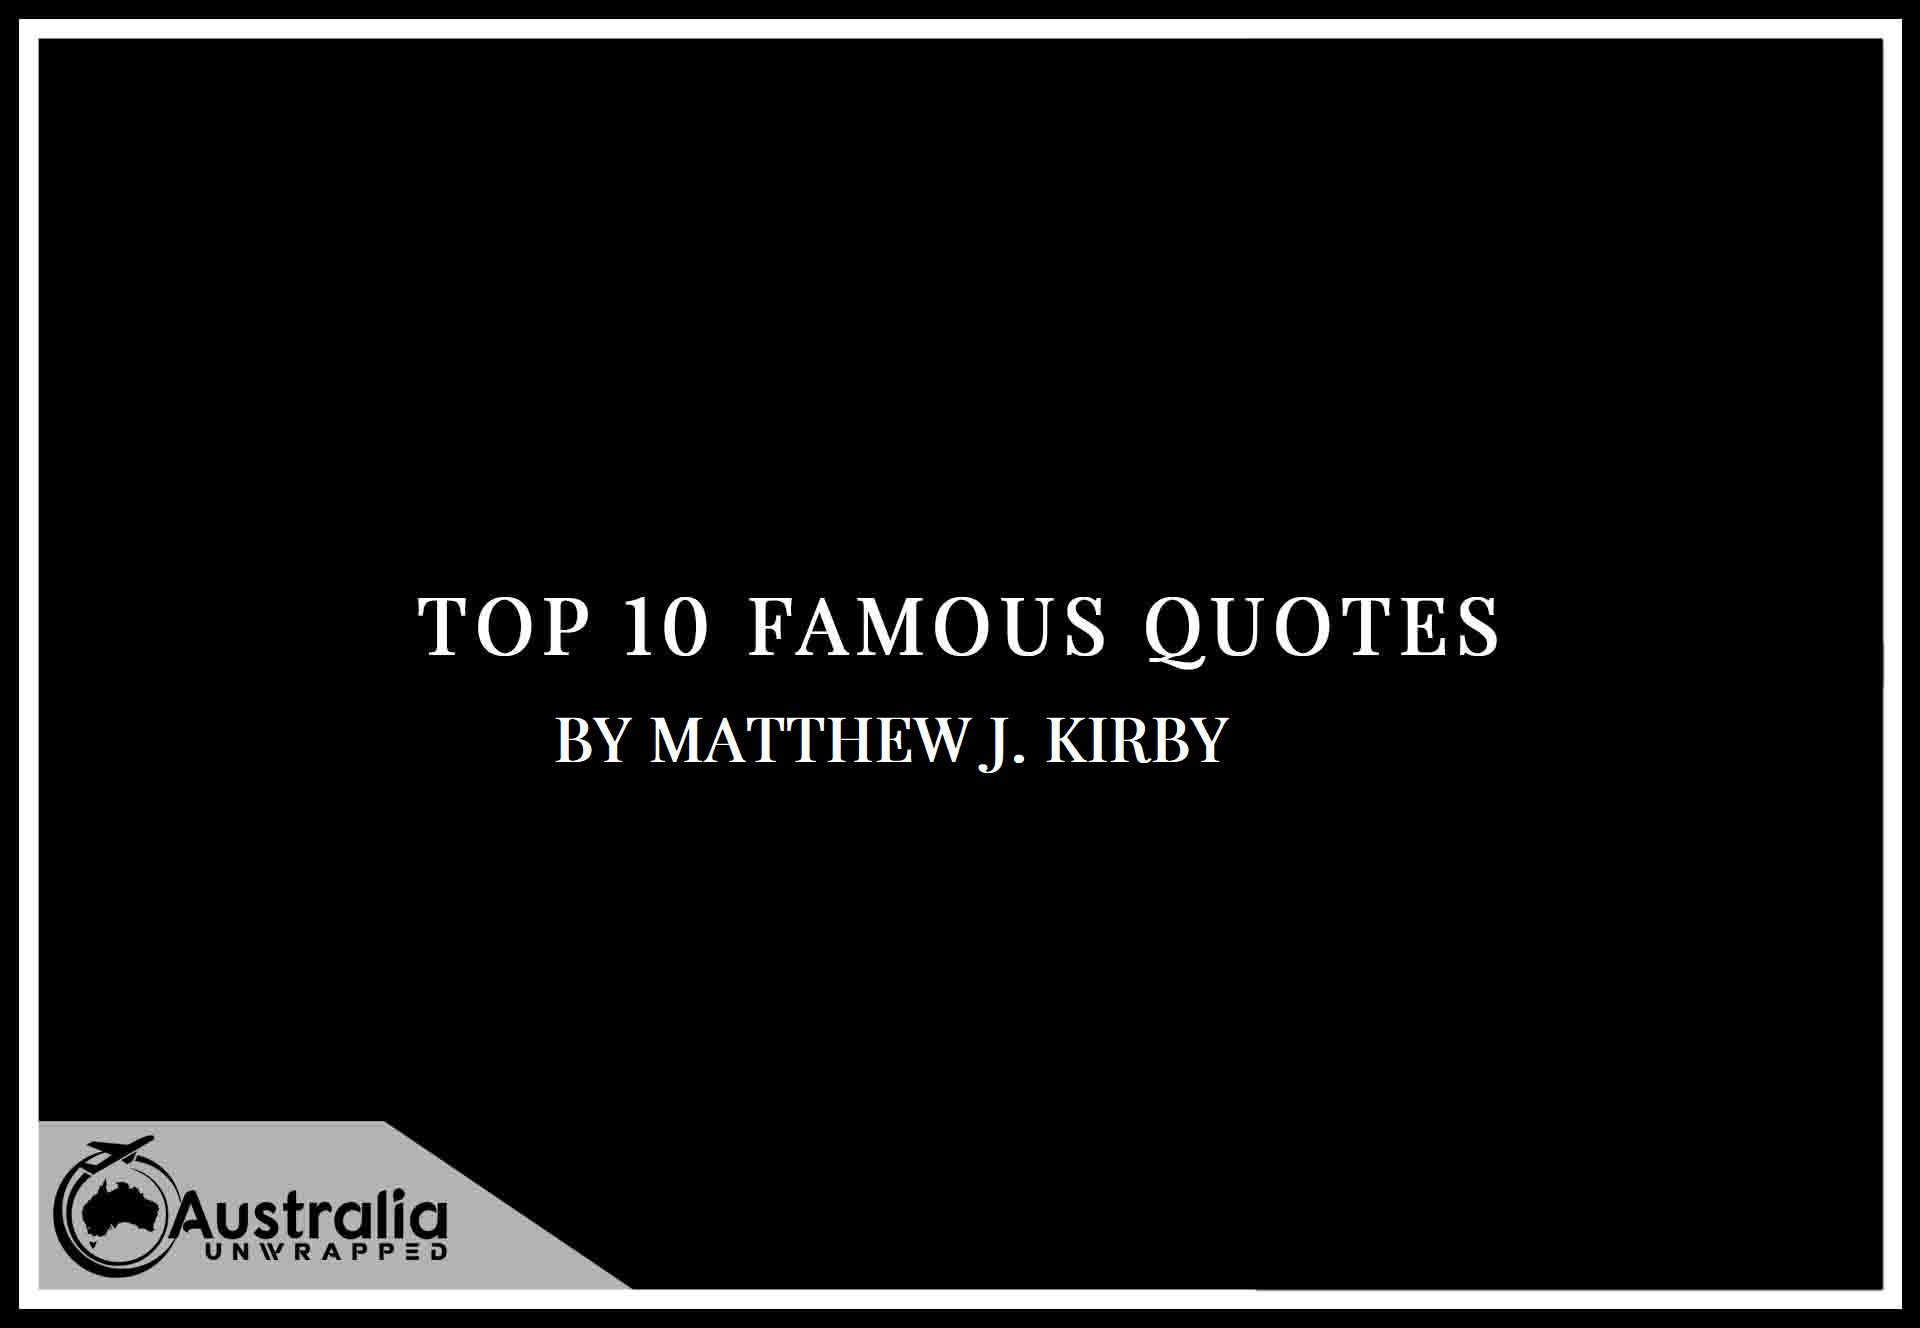 Top 10 Famous Quotes by Author Matthew J. Kirby